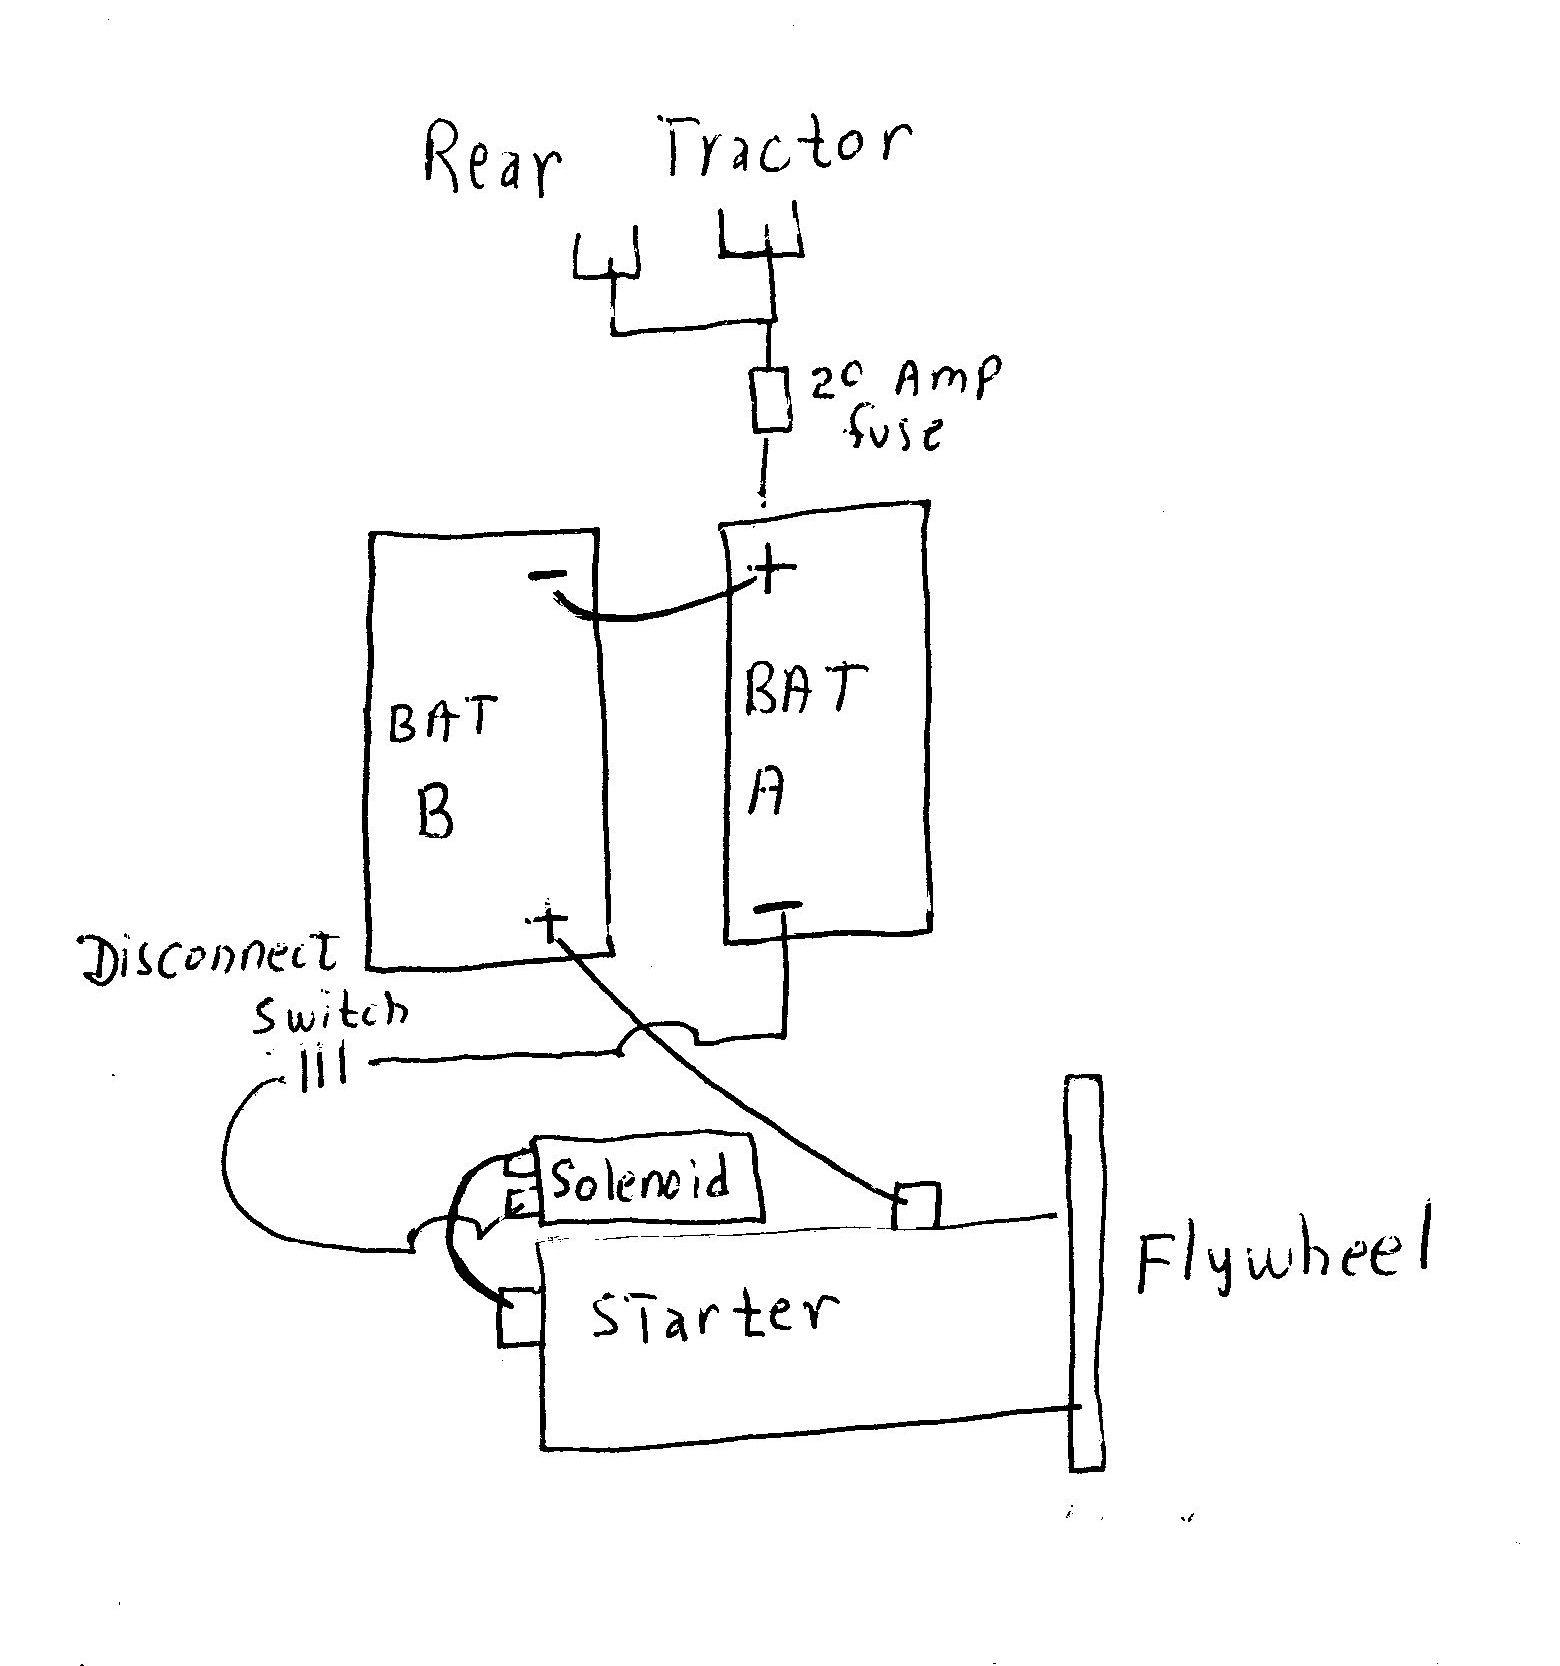 6 Volt To 12 Conversion Wiring Diagram For Ford Tractor Auto 8n